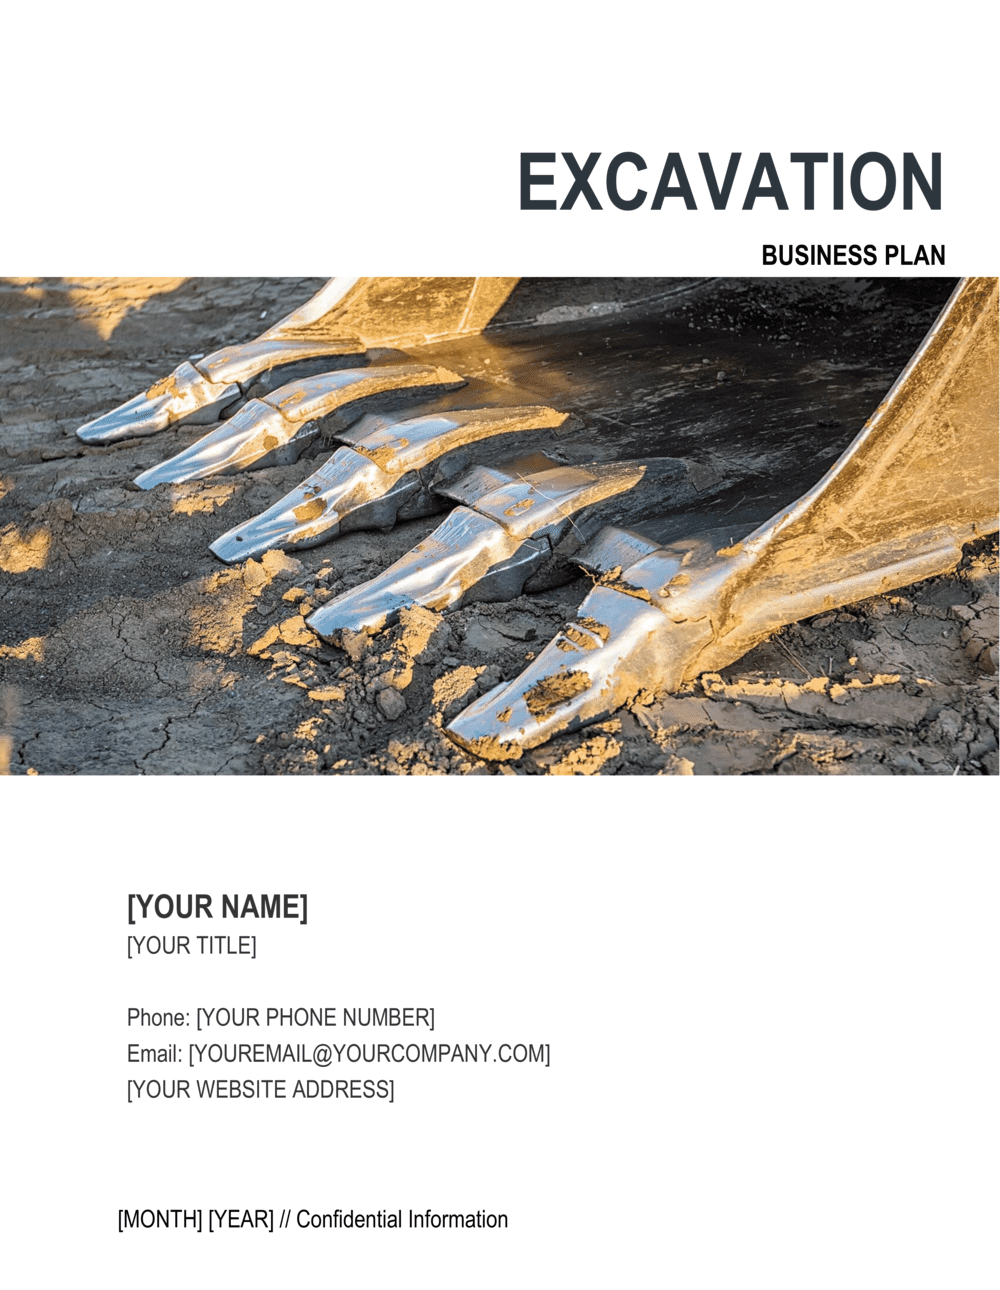 Business-in-a-Box's Excavation Contractor Business Plan Template